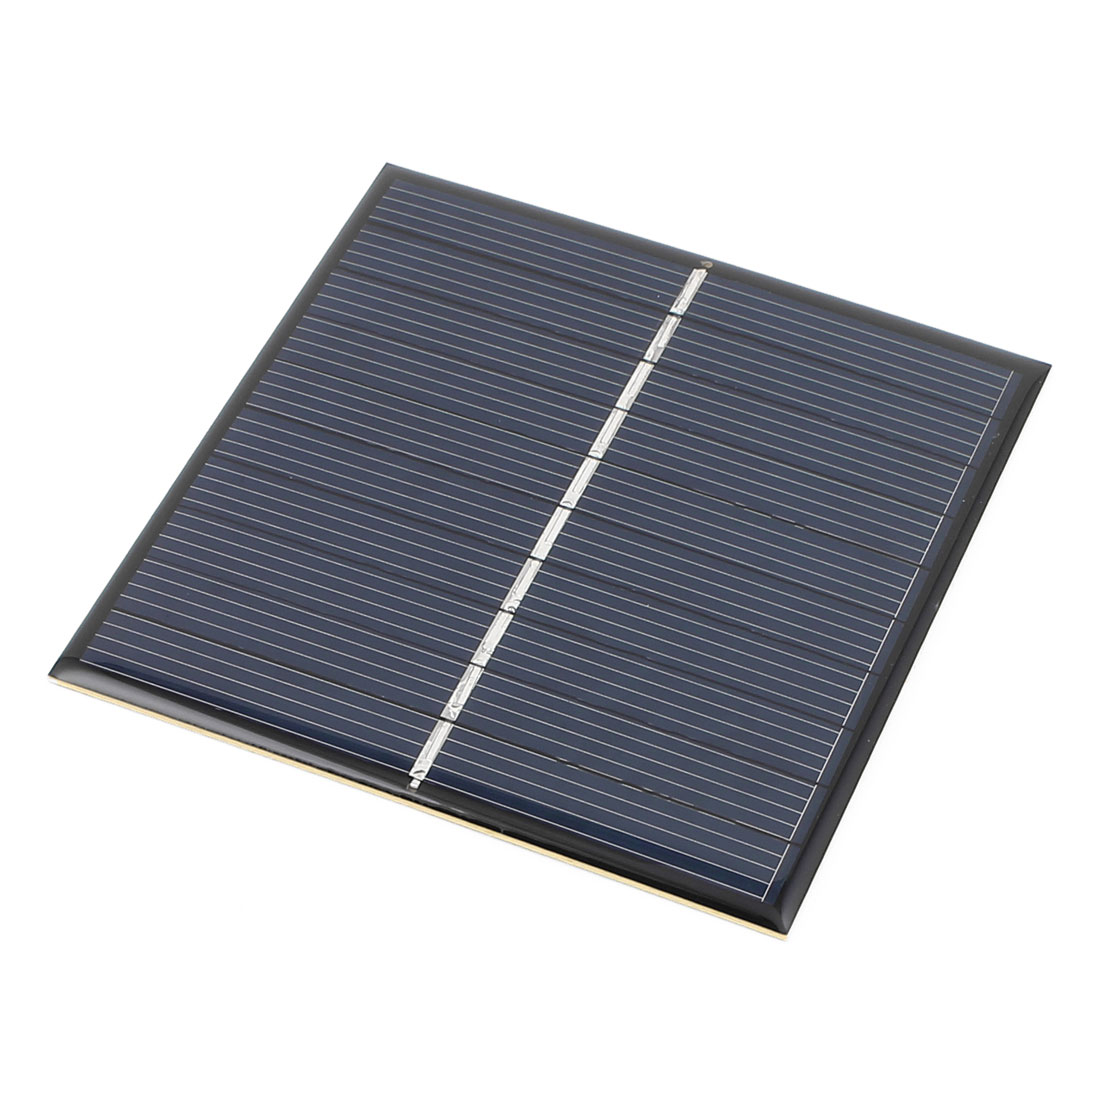 5V 0.87W DIY Polycrystallinesilicon Solar Panel Power Cell Battery Charger 84mm x 84mm